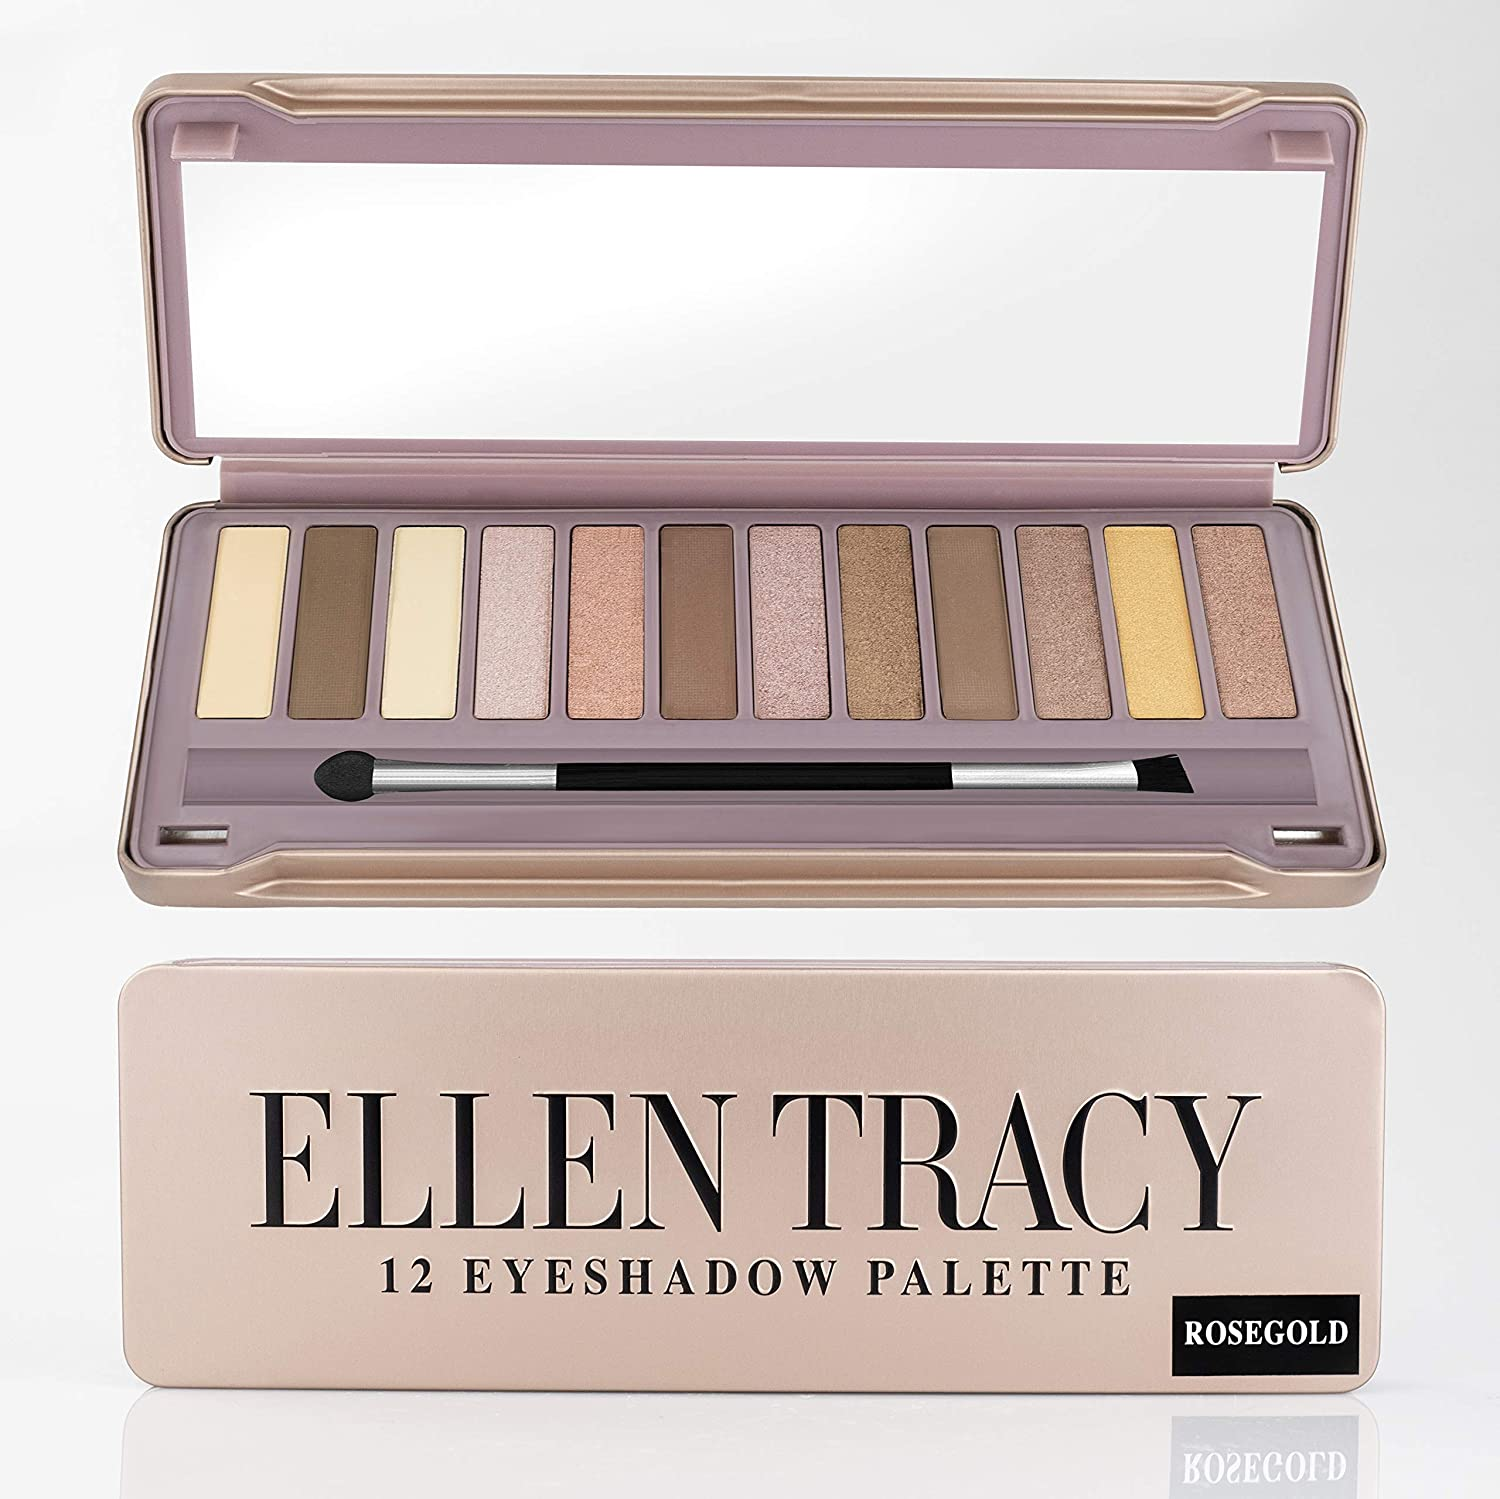 Ellen Tracy Luxurious 12 Well Eye Shadow Palette In Tin Box Easy To Apply Everyday Wear For Women Teen Girls Rose Gold Colors Blushed Glowing